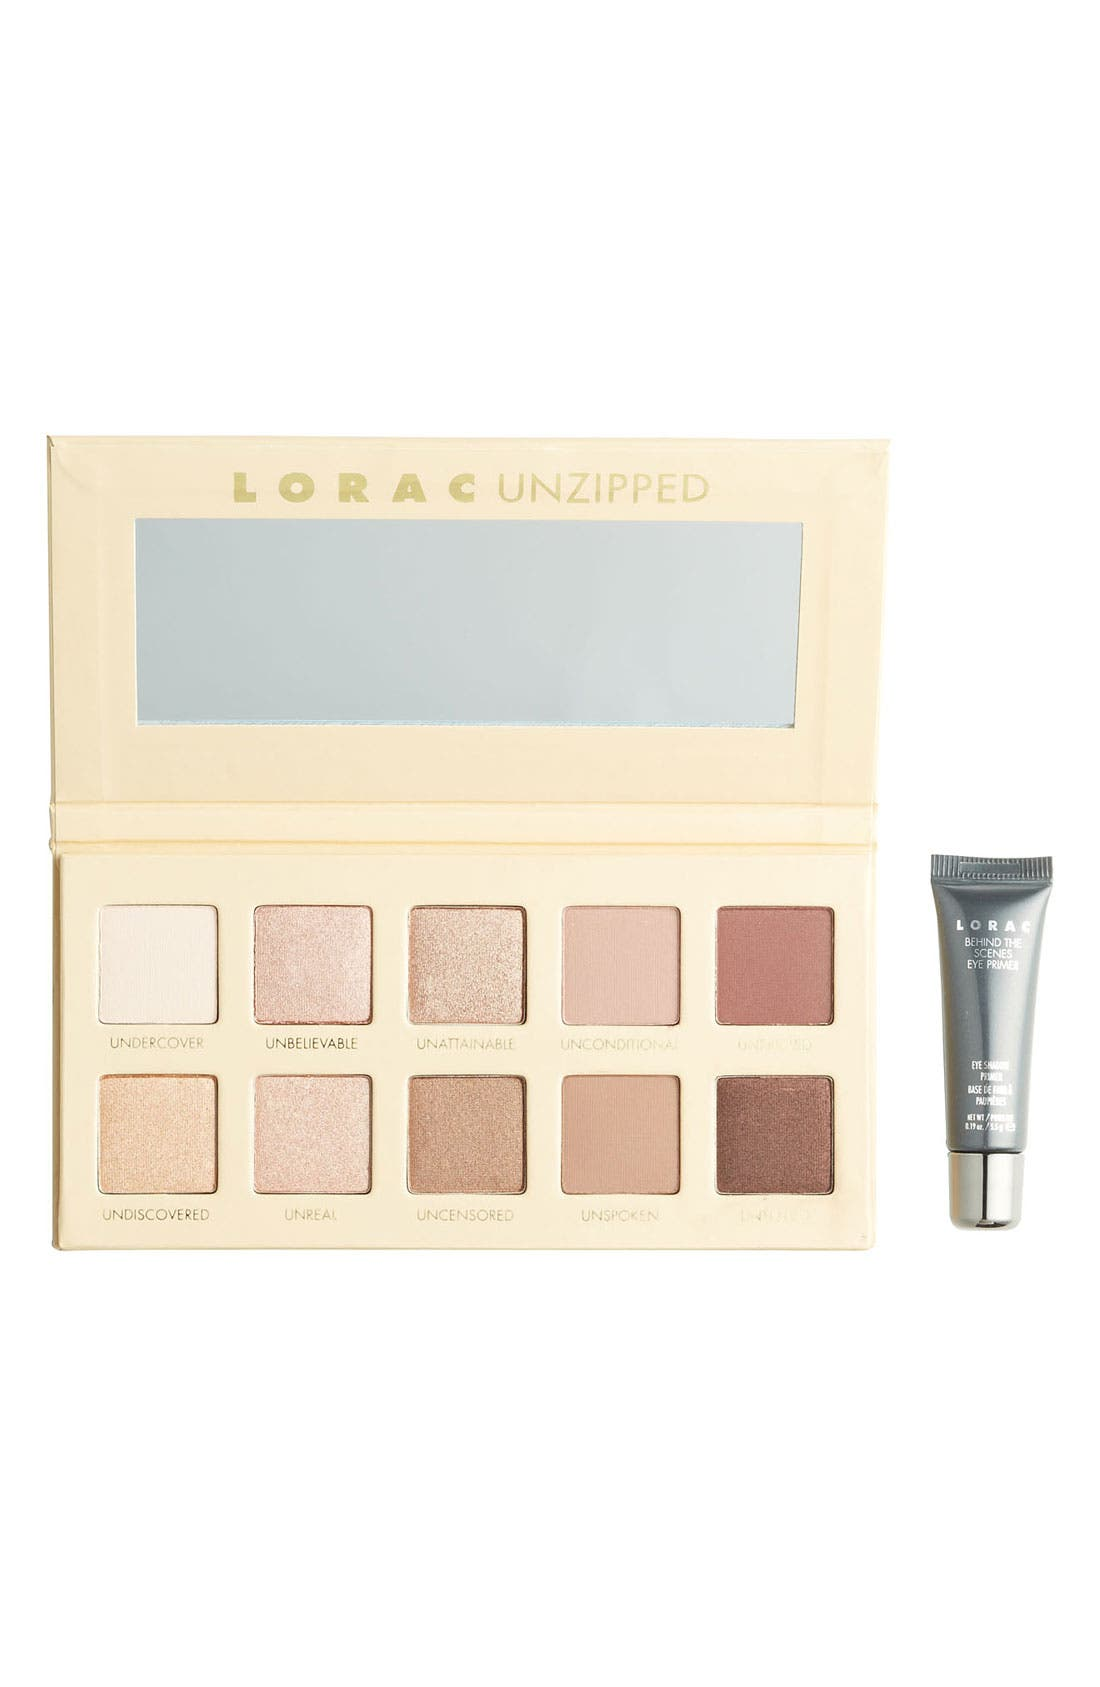 LORAC 'Unzipped' Shimmer & Matte Eyeshadow Palette ($200 Value)